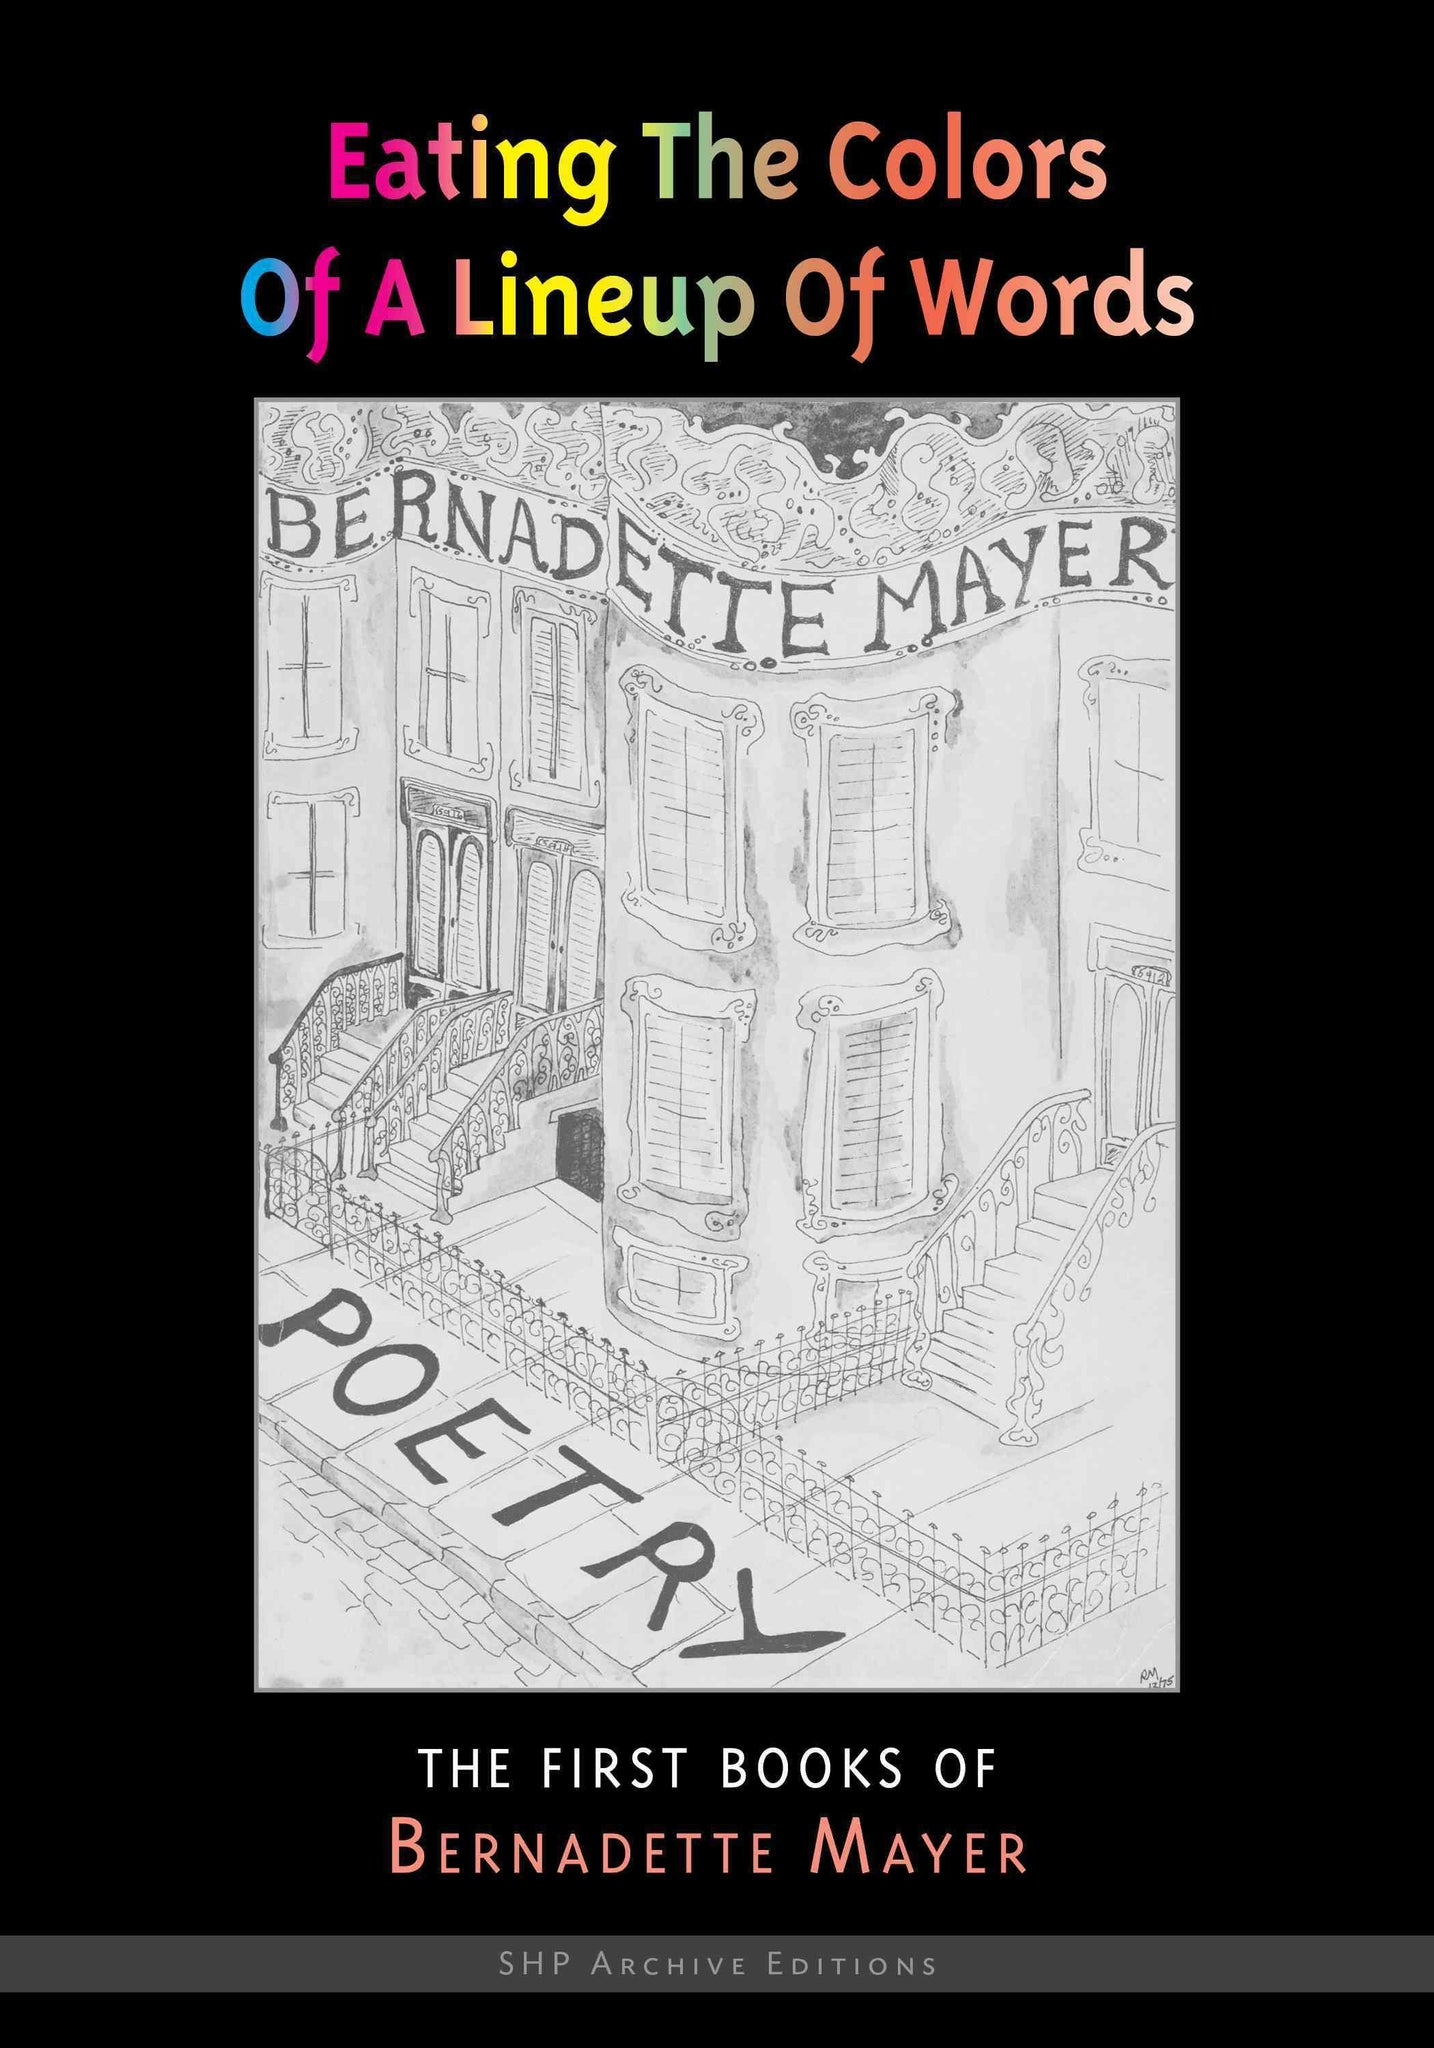 Eating the Colors of a Lineup of Words: The Collected Early Books of Bernadette Mayer